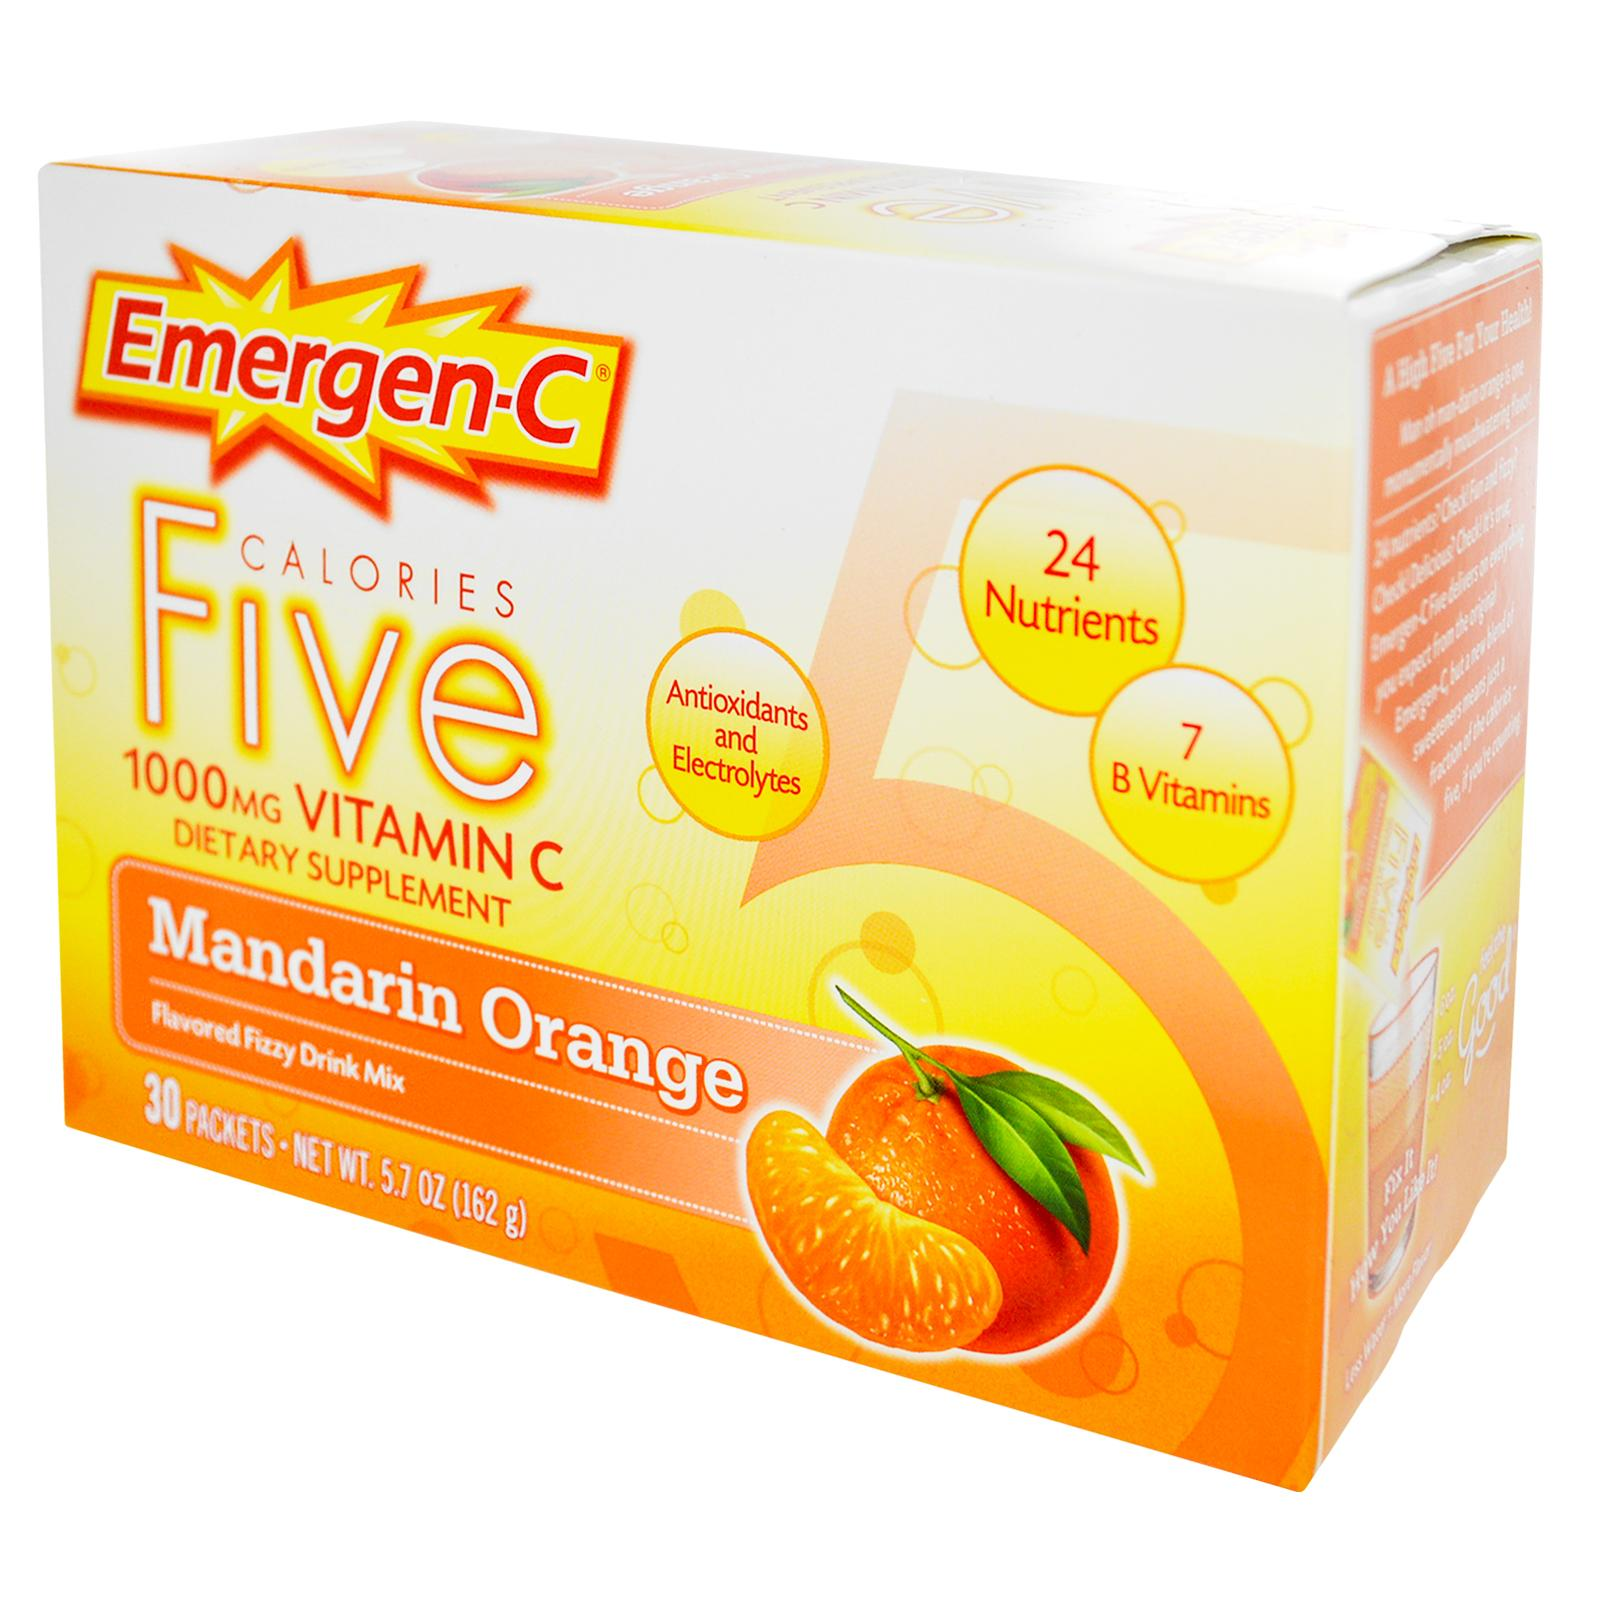 EMERGEN-C - THE LAST THING YOU WANT TO DO IS SPEND YOUR TRIP SICK IN BED.